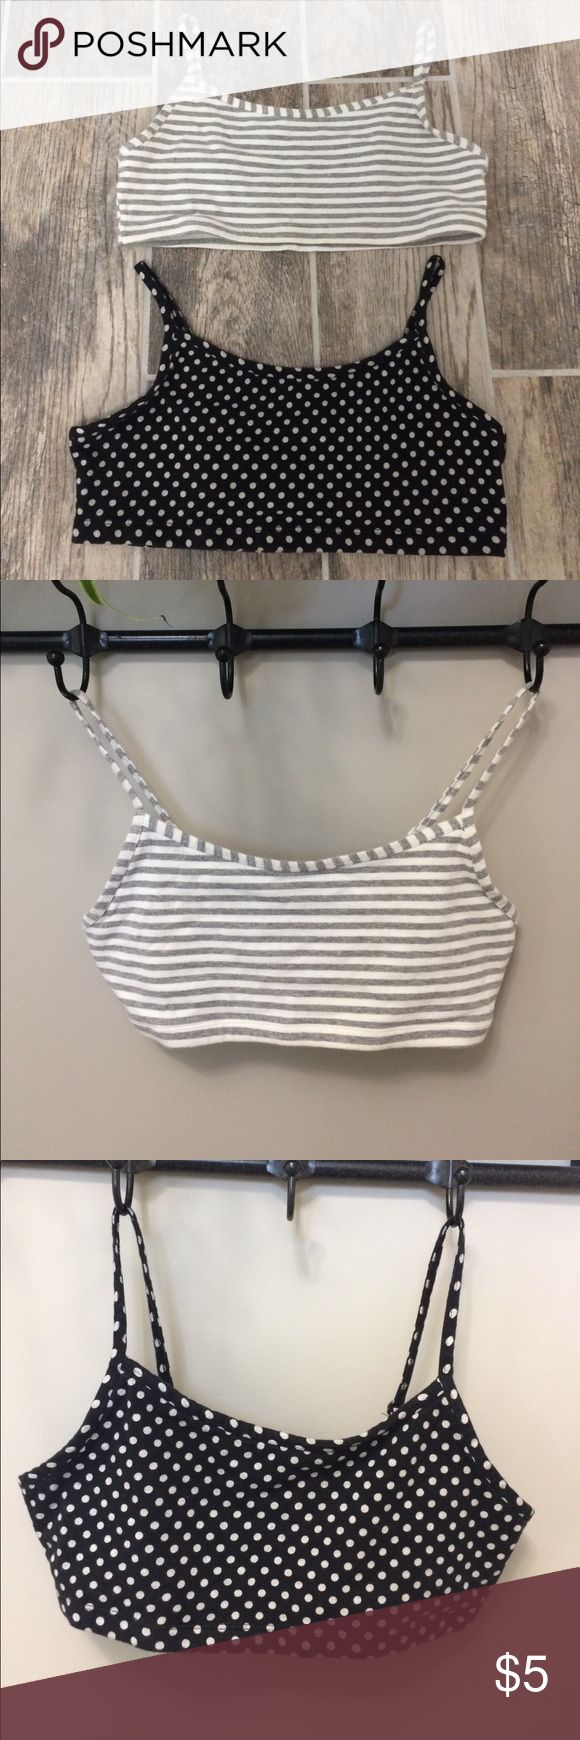 Sports Bras 2 bras. Gray and white striped, black and white polka dots. Both old navy Large. Old Navy Intimates & Sleepwear Bras